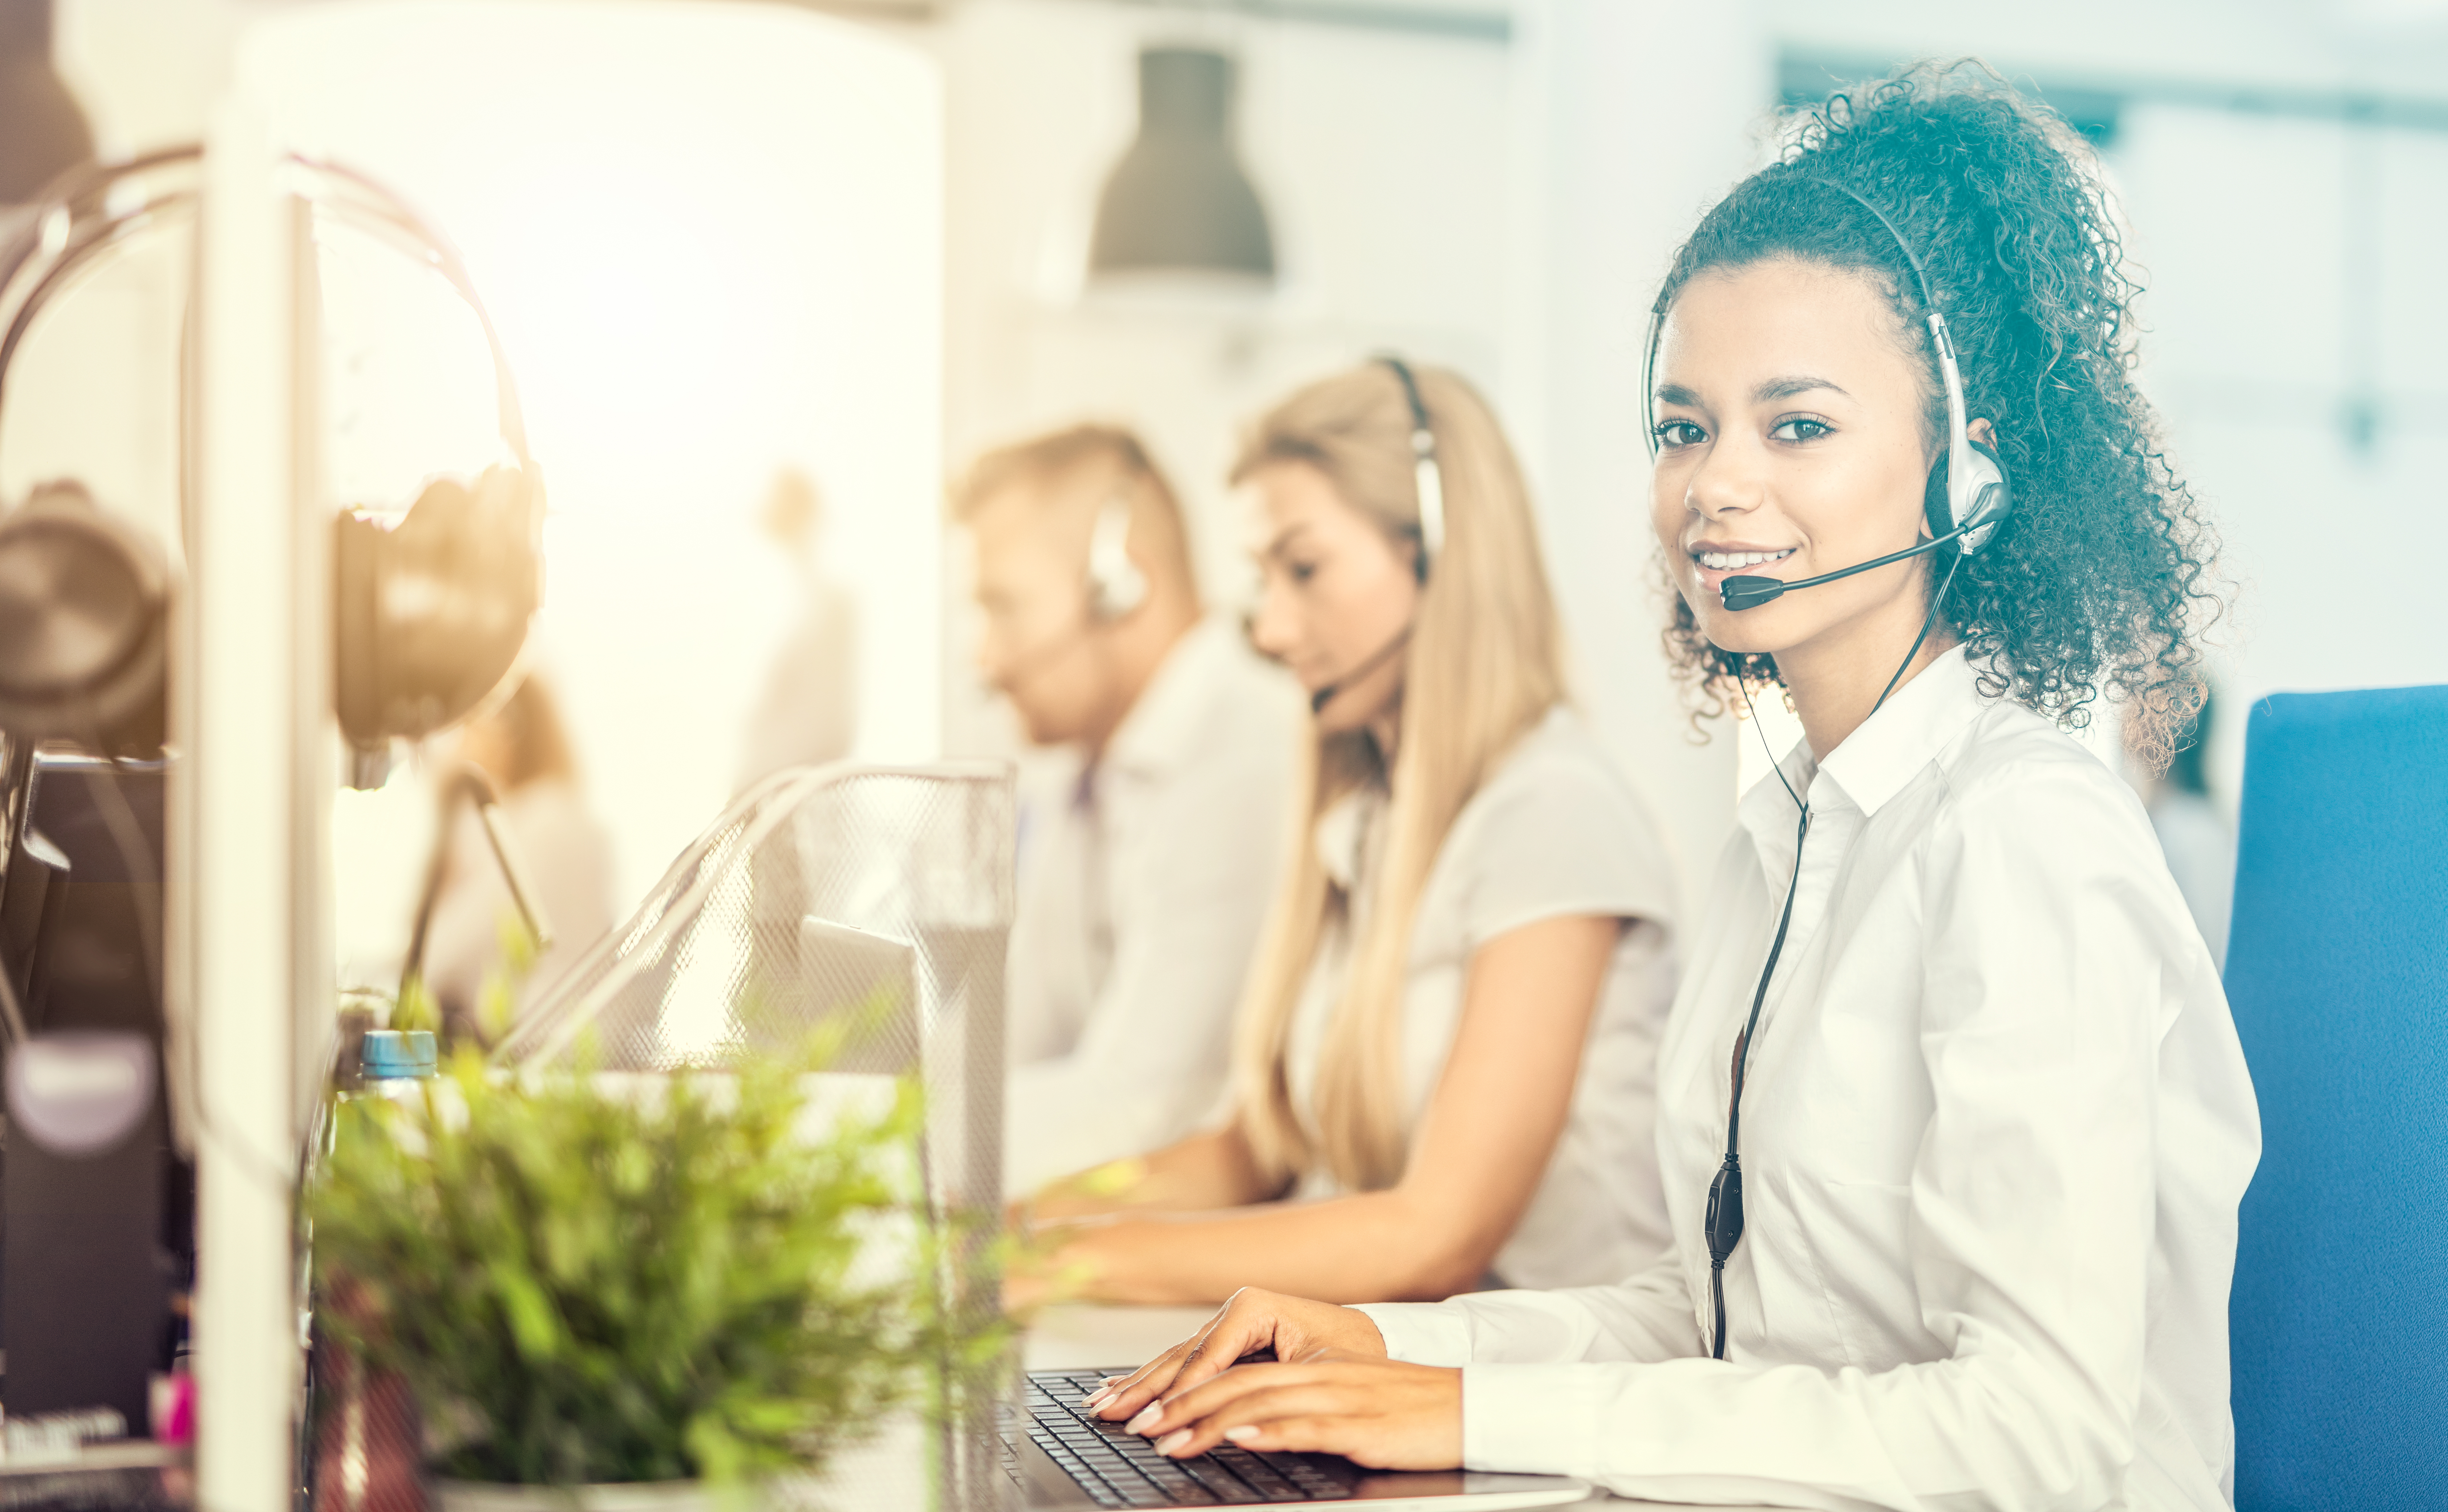 Contact center agents affect bottom line